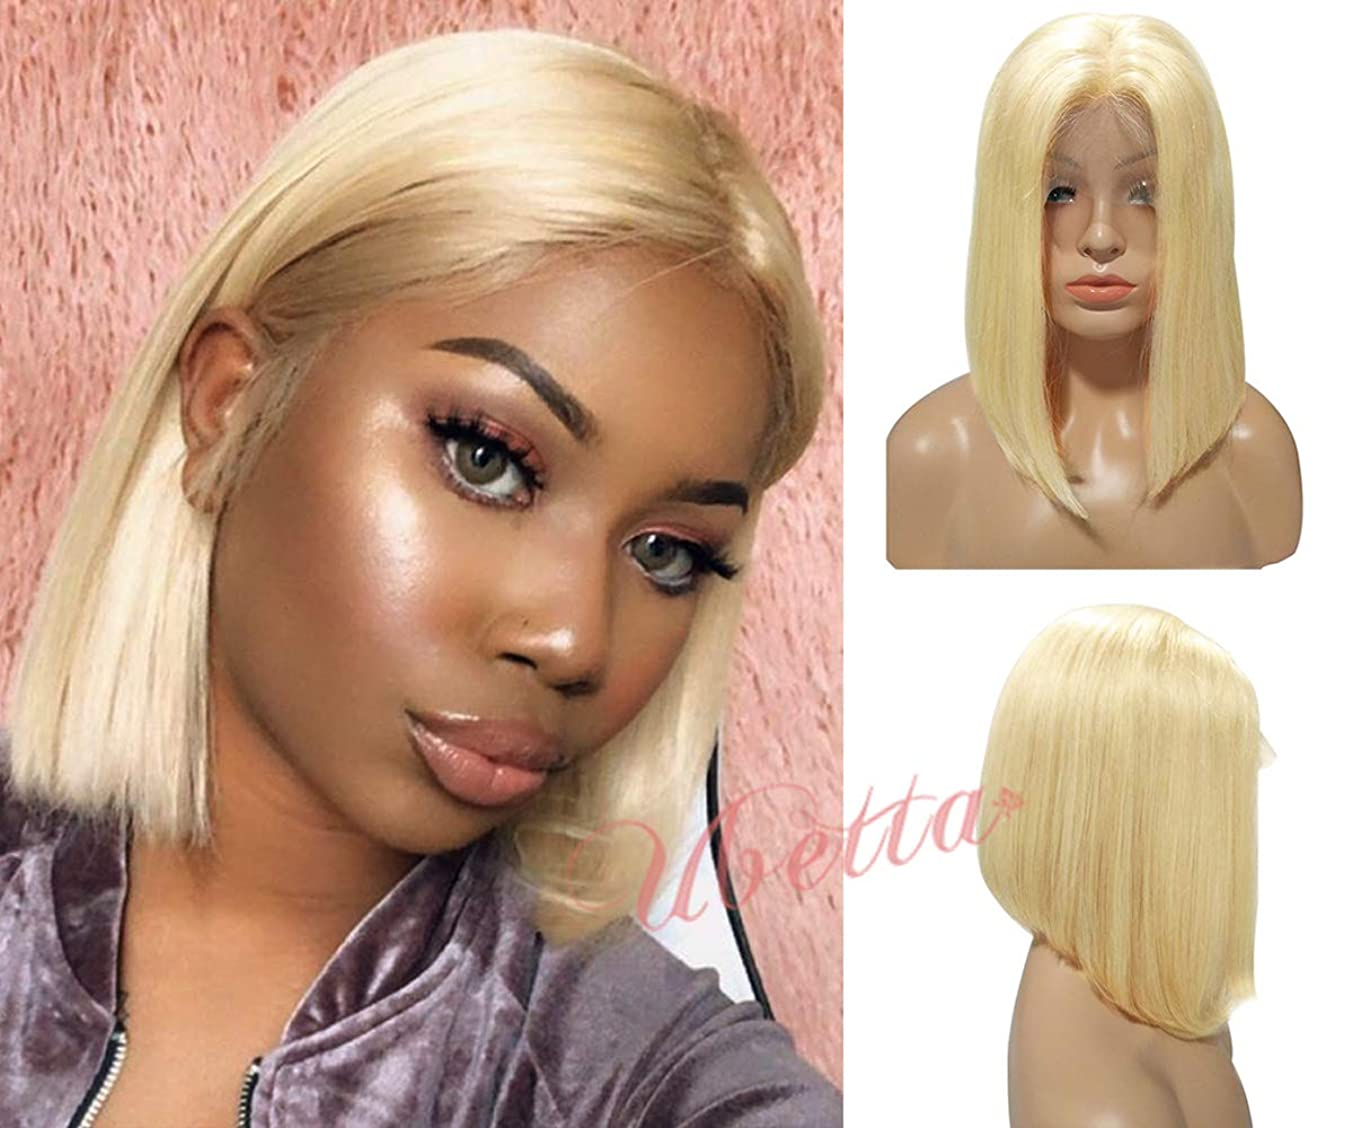 Blonde Bob Lace Front Human Hair Wig Pre Plucked with Baby Hair 10Inch Glueless 13x4 Brazilian Virgin Hair Straight 613 Lace Wig Bleached Knots Middle Part 180% Density Colored Bob Wig for Black Women